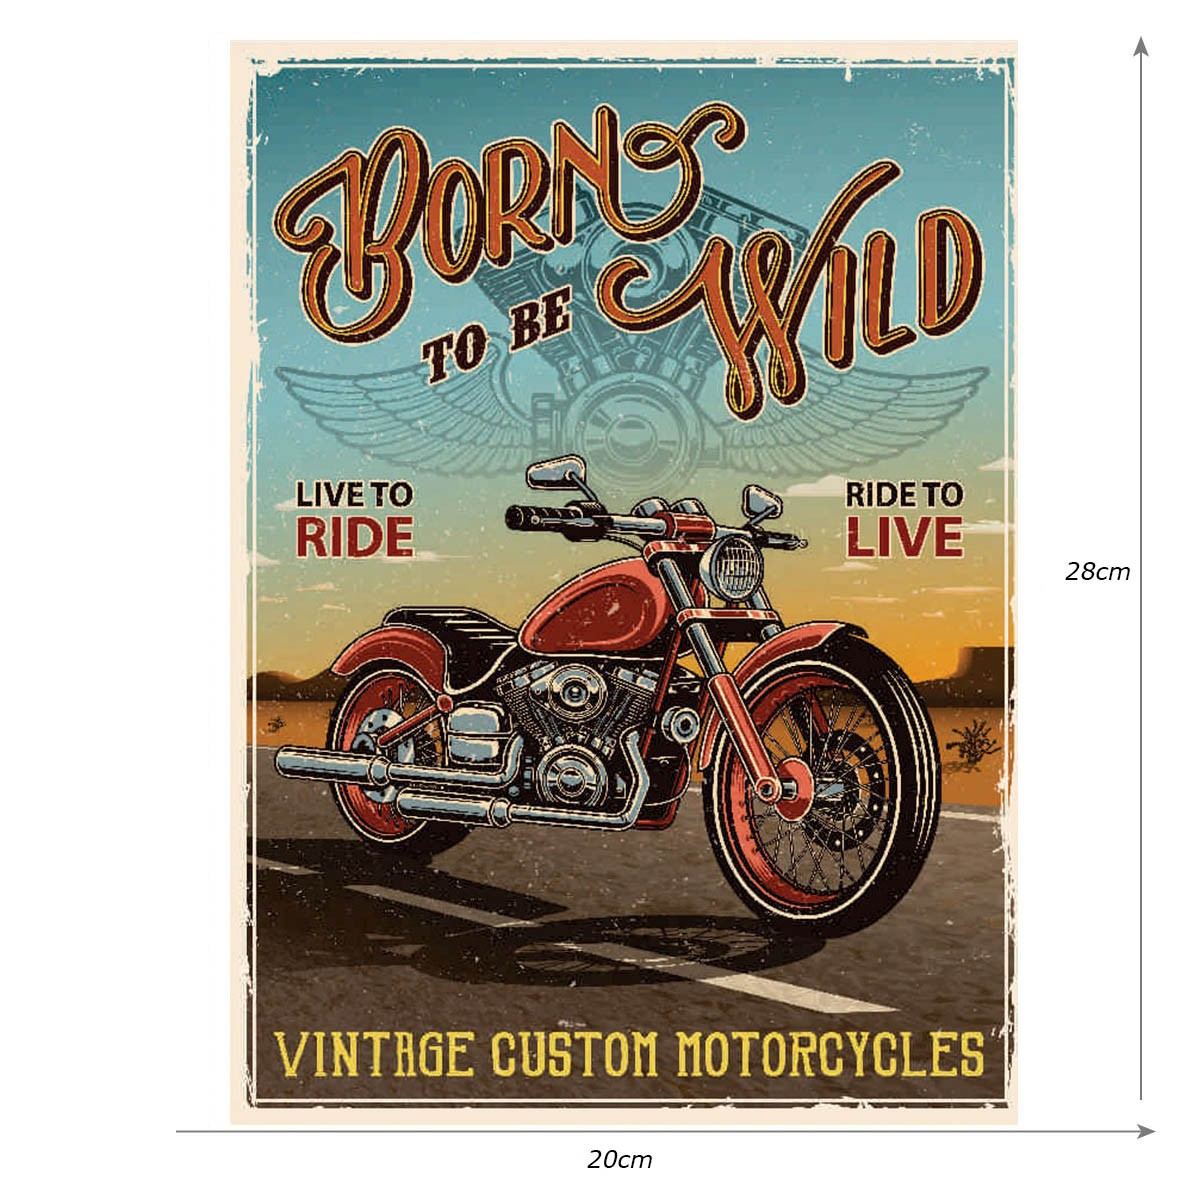 Placa Quadro Decorativo Vintage Custom Motorcycles - 20x28cm